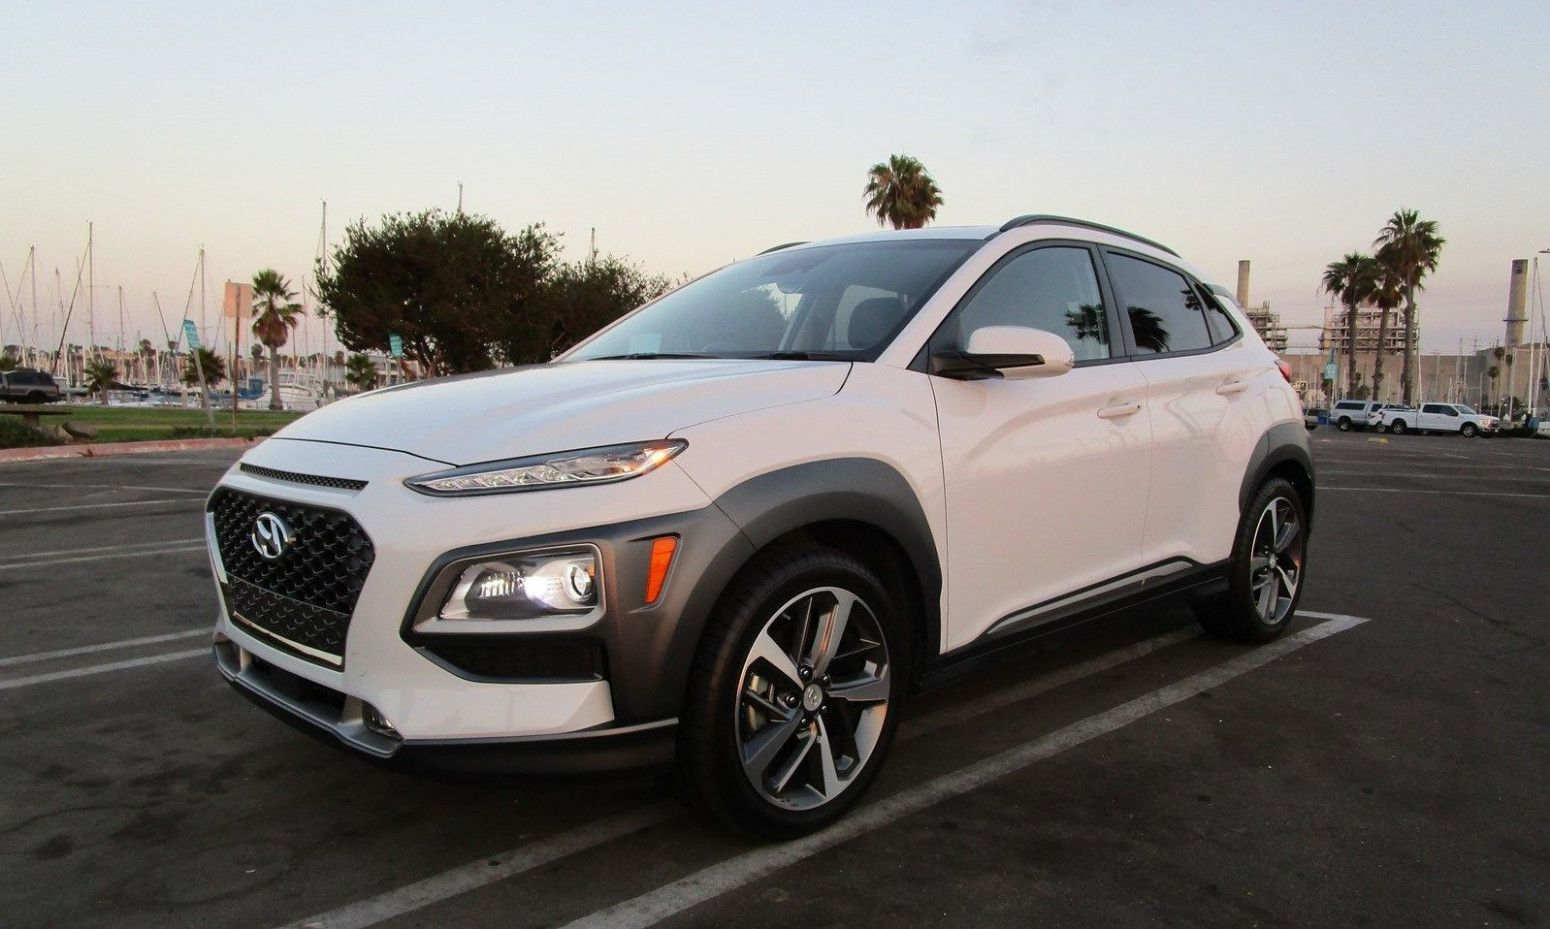 The 7 Secrets About 2020 Hyundai Ultimate Kona Only A Handful Of People Know Hyundai Concept Cars Northeastern Region